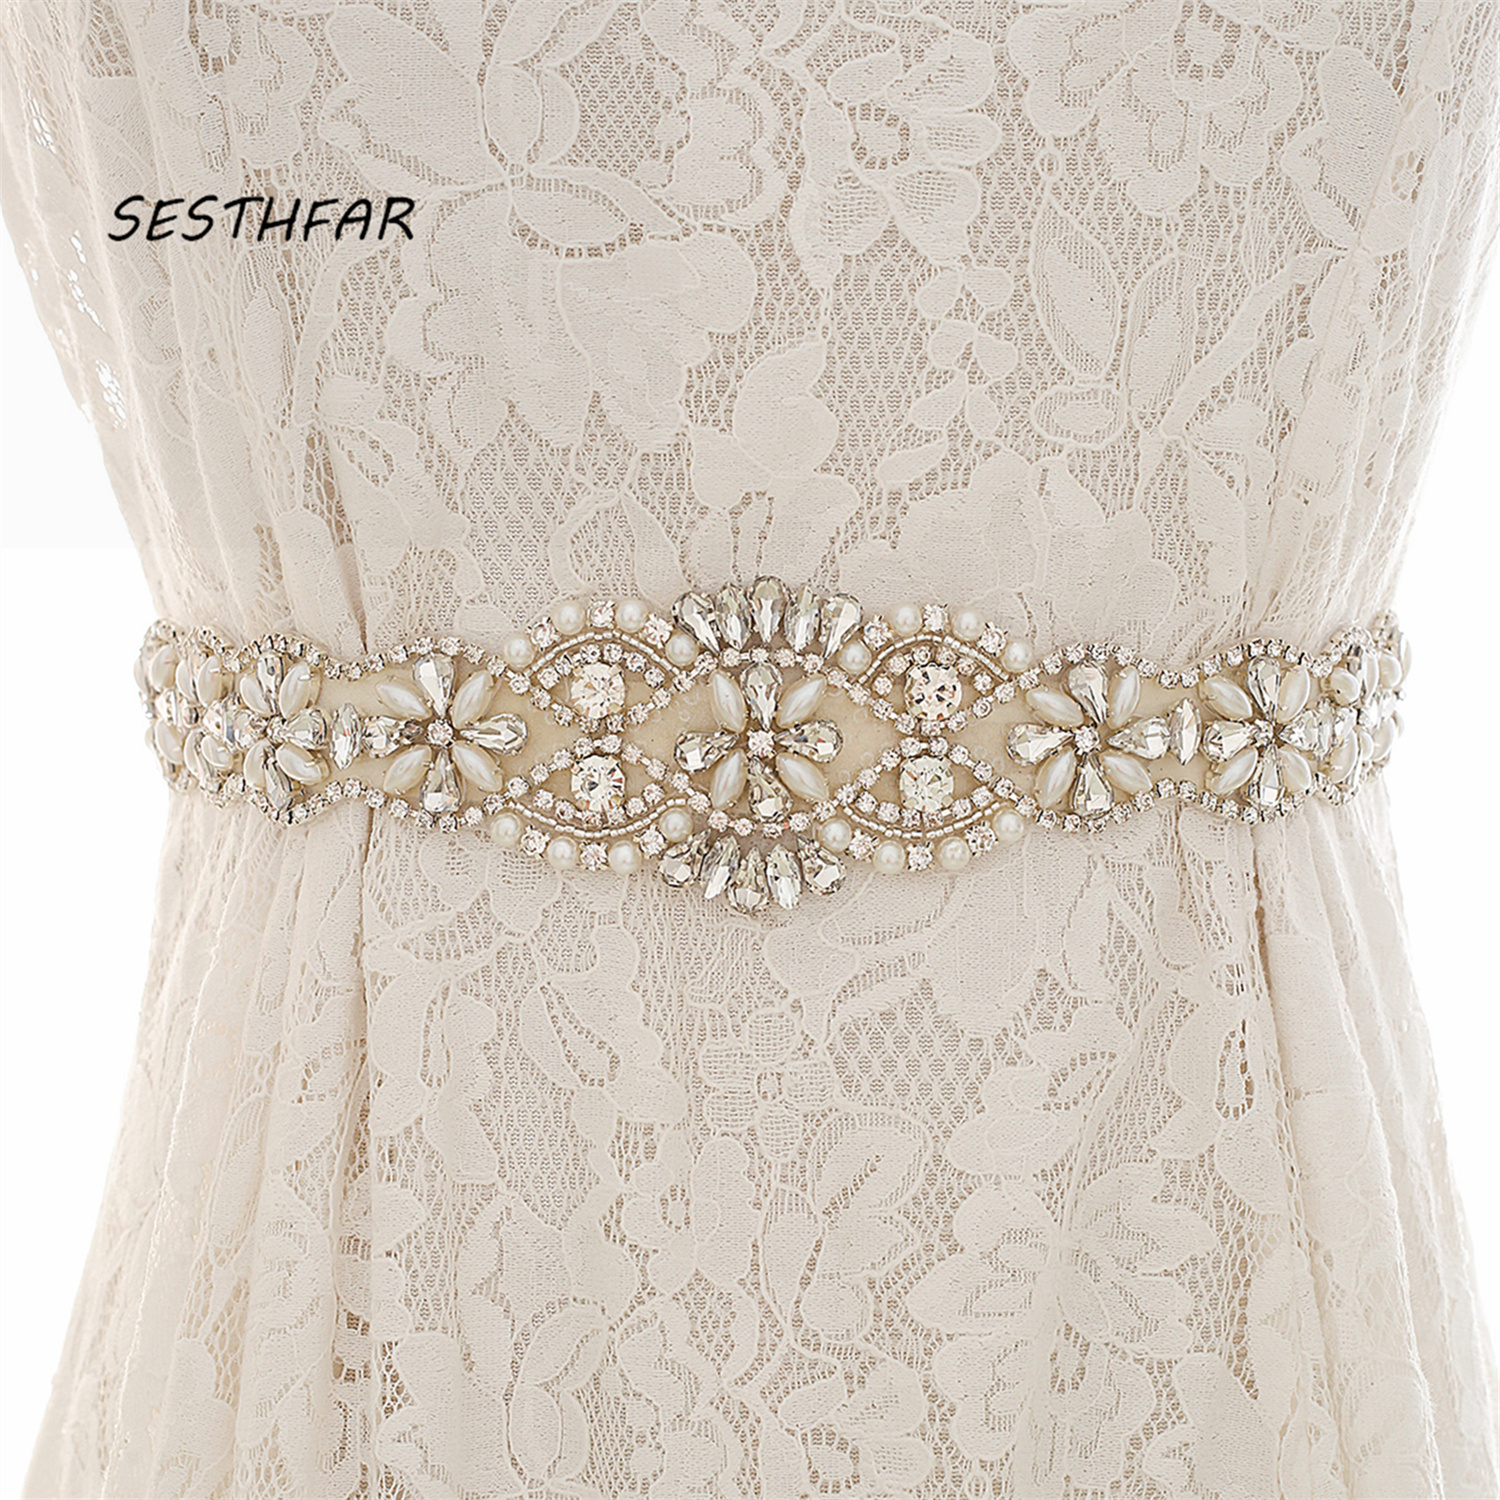 Pearls Wedding Belt Crystal Bridal Belt Sliver Rhinestones Satin Bridal Sash For Wedding Dress Accessories J130